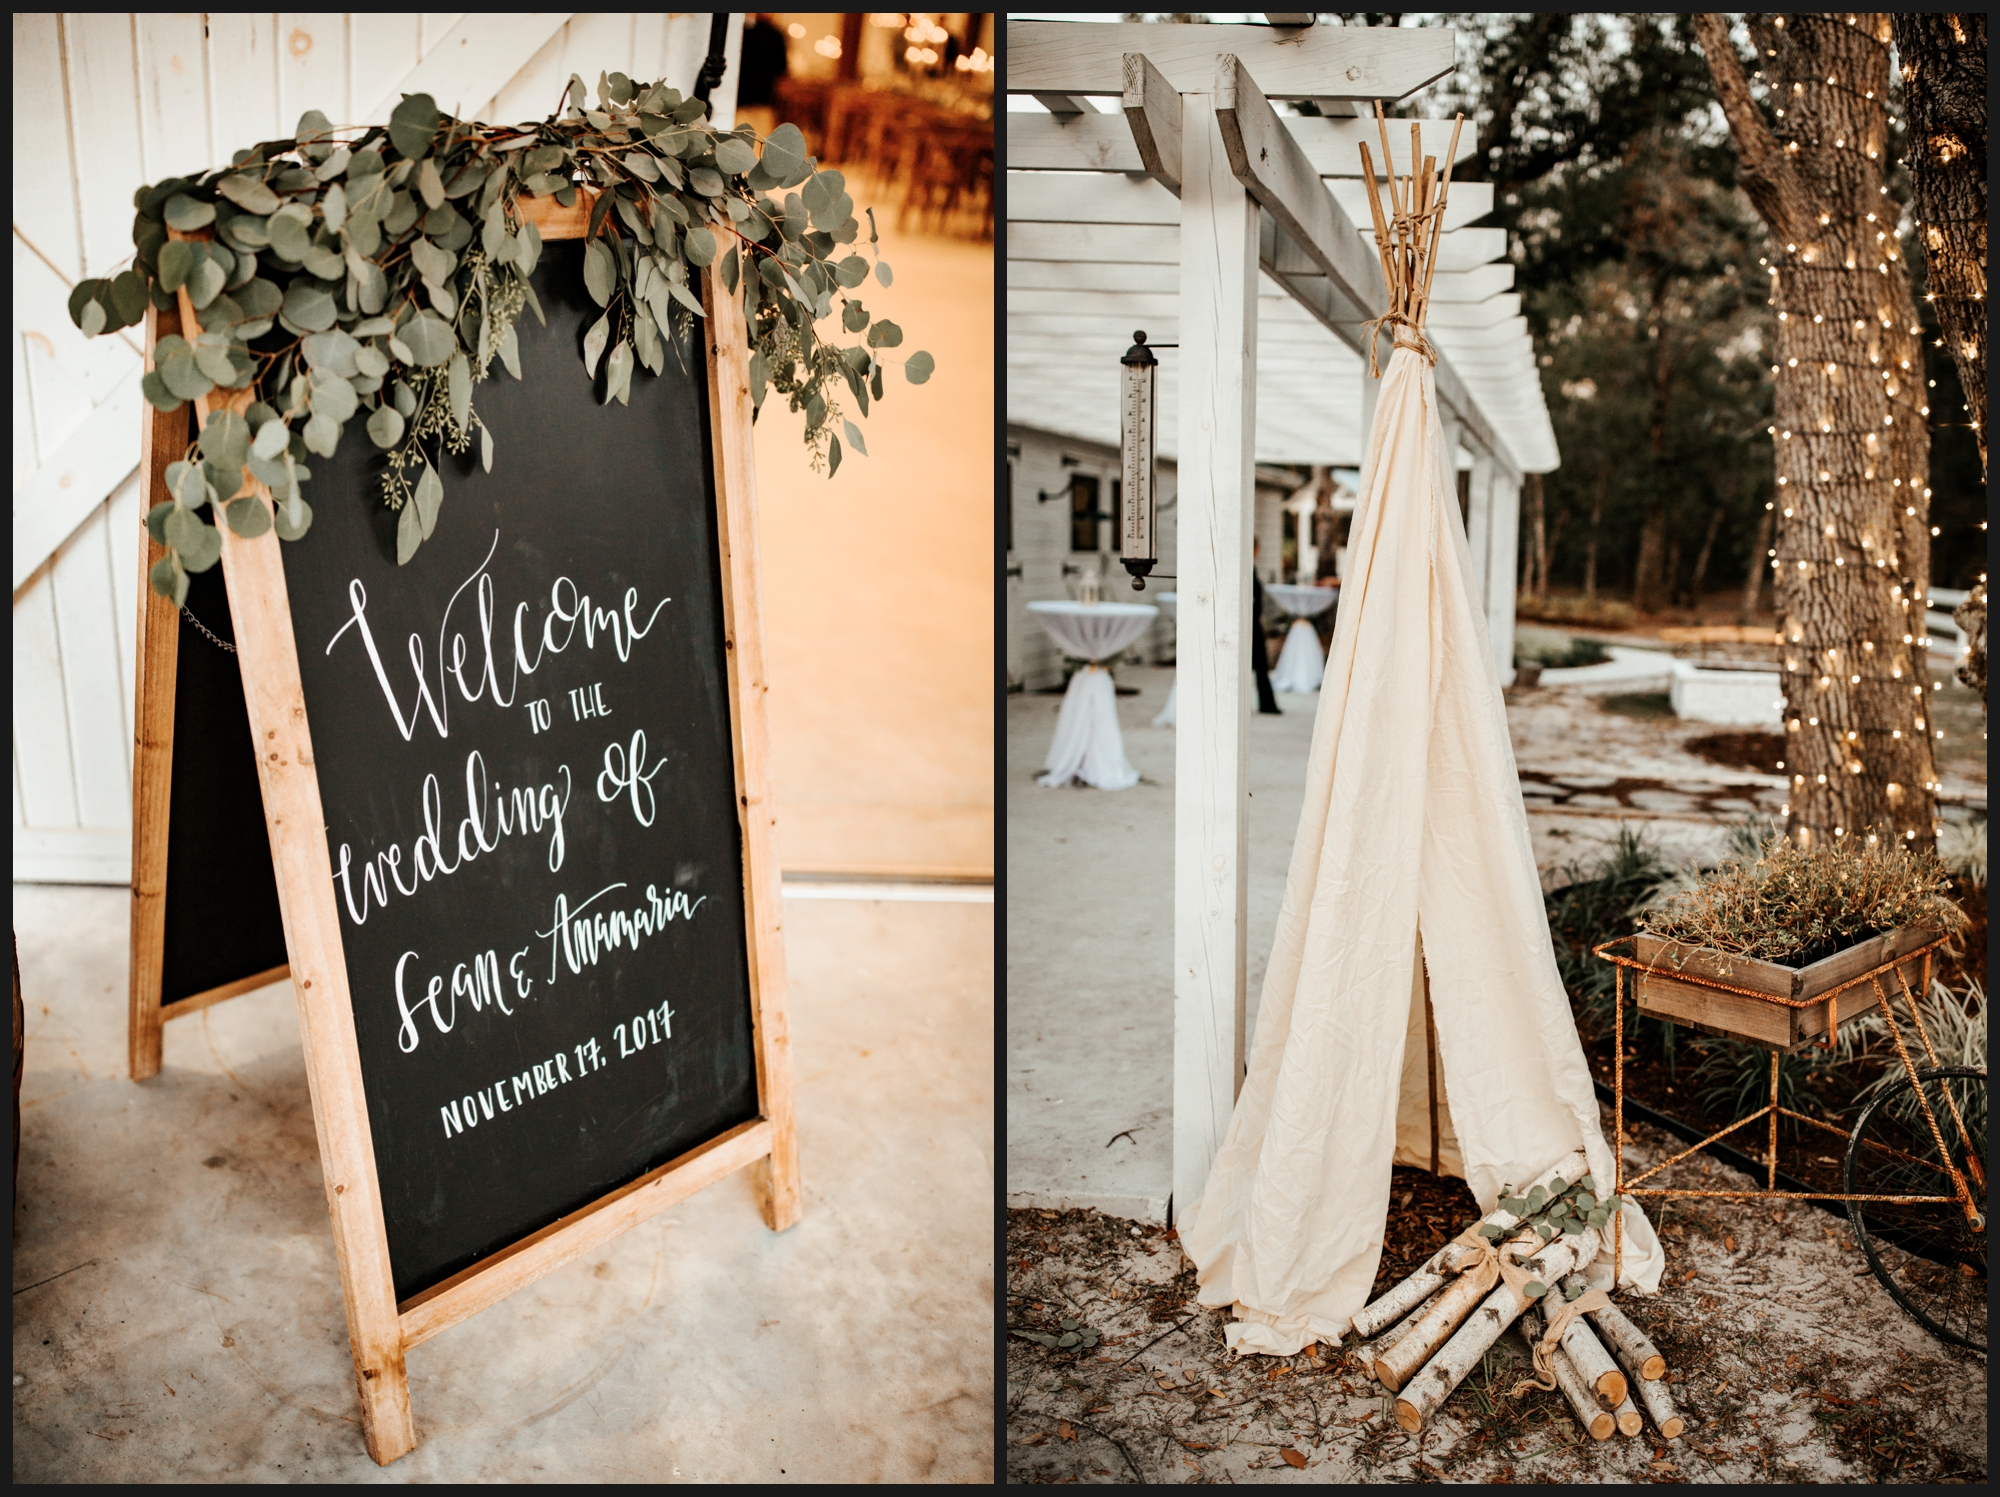 Orlando-Wedding-Photographer-destination-wedding-photographer-florida-wedding-photographer-bohemian-wedding-photographer_1028.jpg